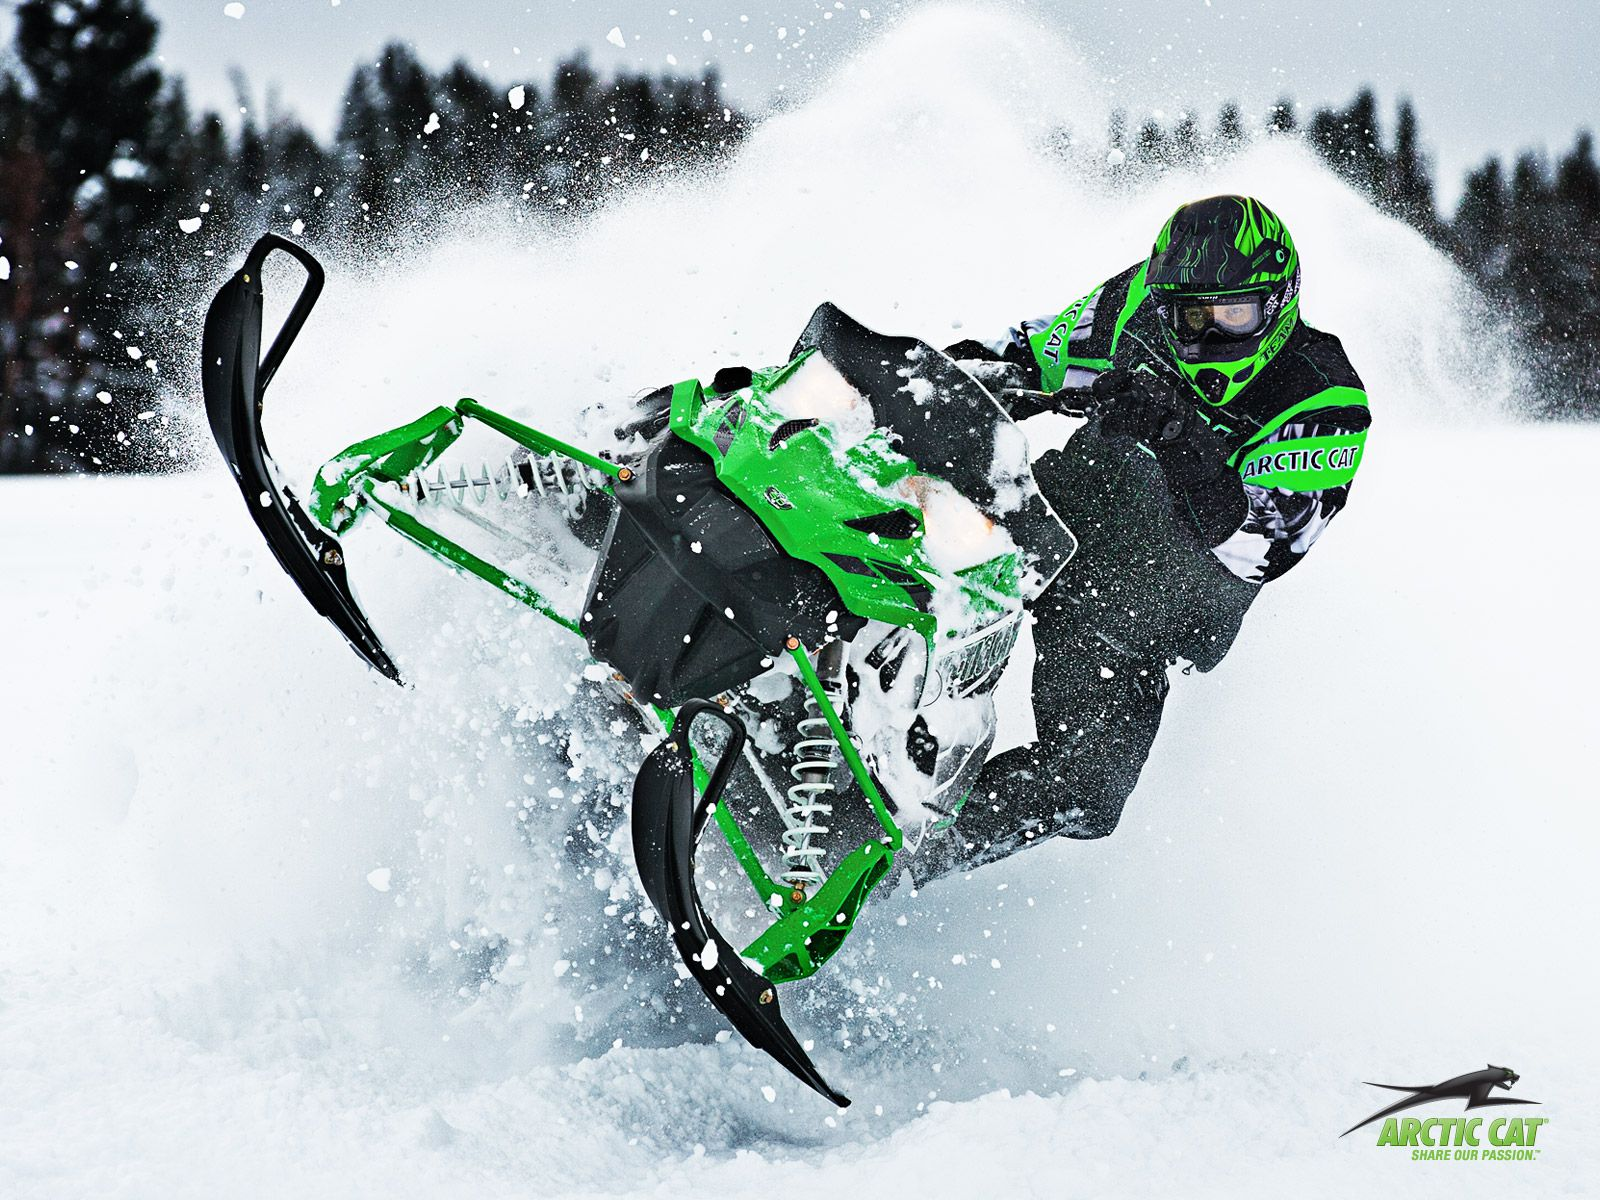 73 Best Snowmobiling Jet Skiing Images On Pinterest